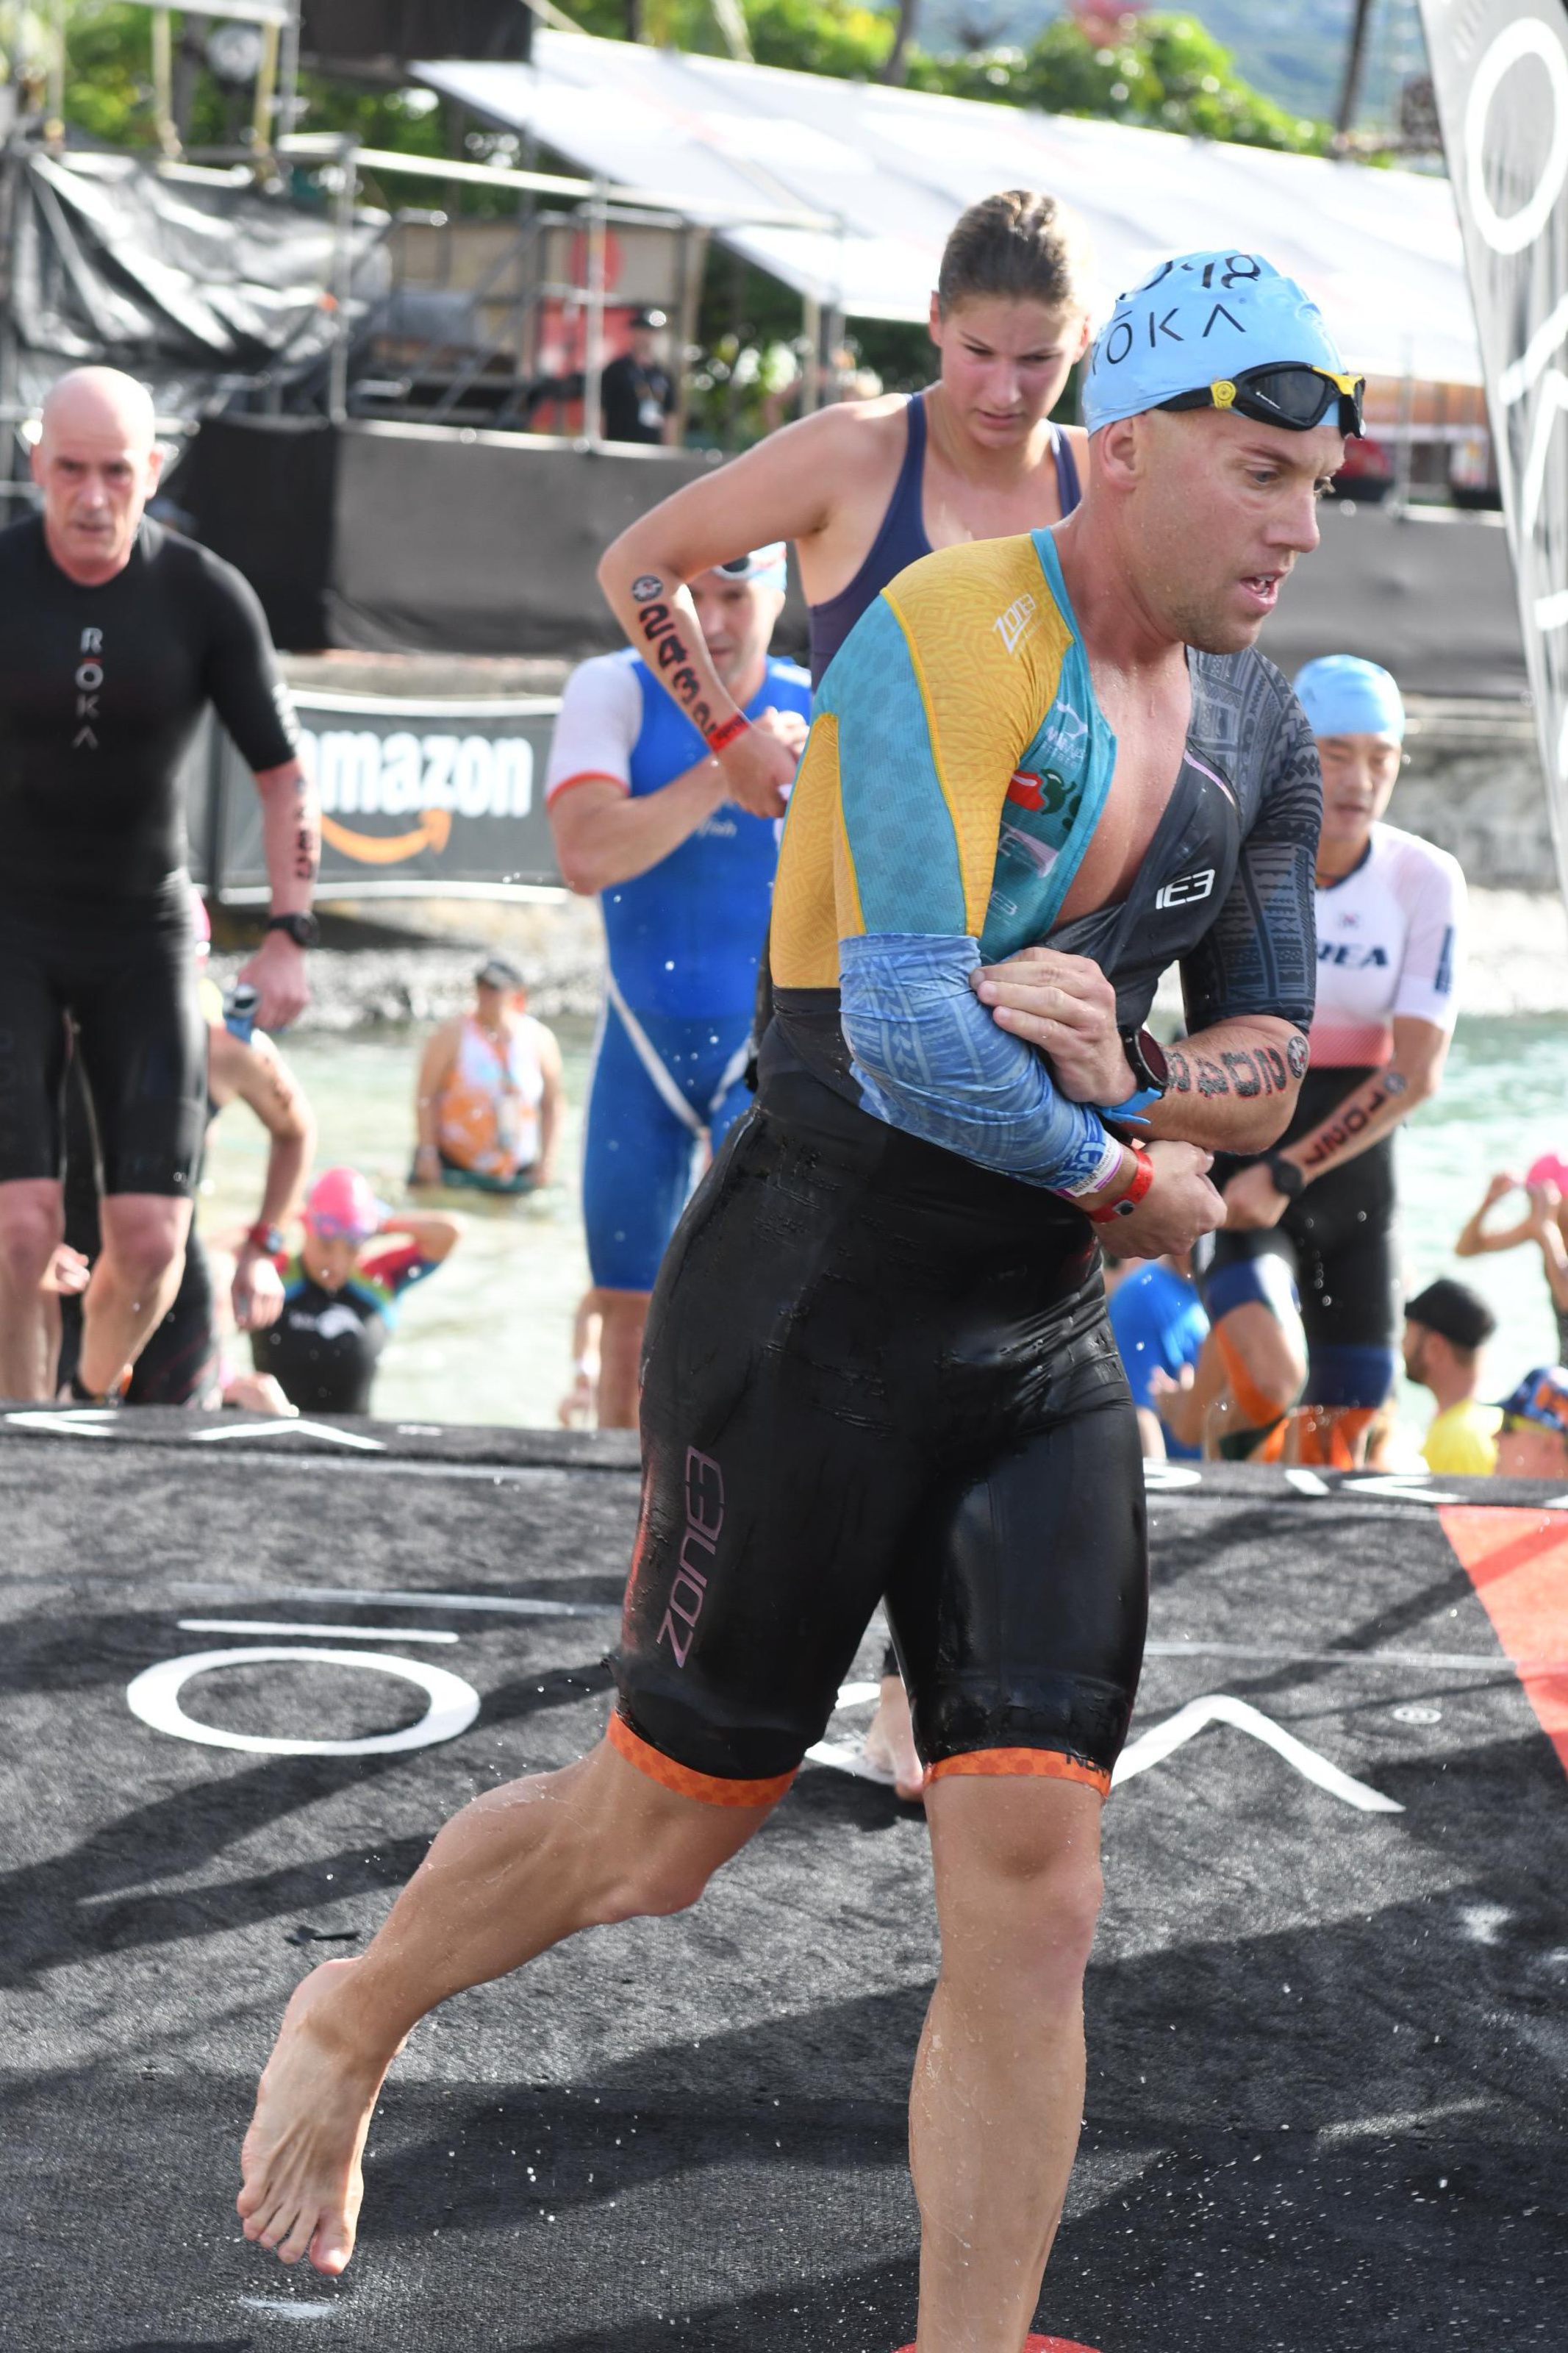 Coach_Terry_Wilson_Pursuit_of_The_Perfect_Race_IRONMAN_World_Championship_Kona_Shane_Peed_3.JPG